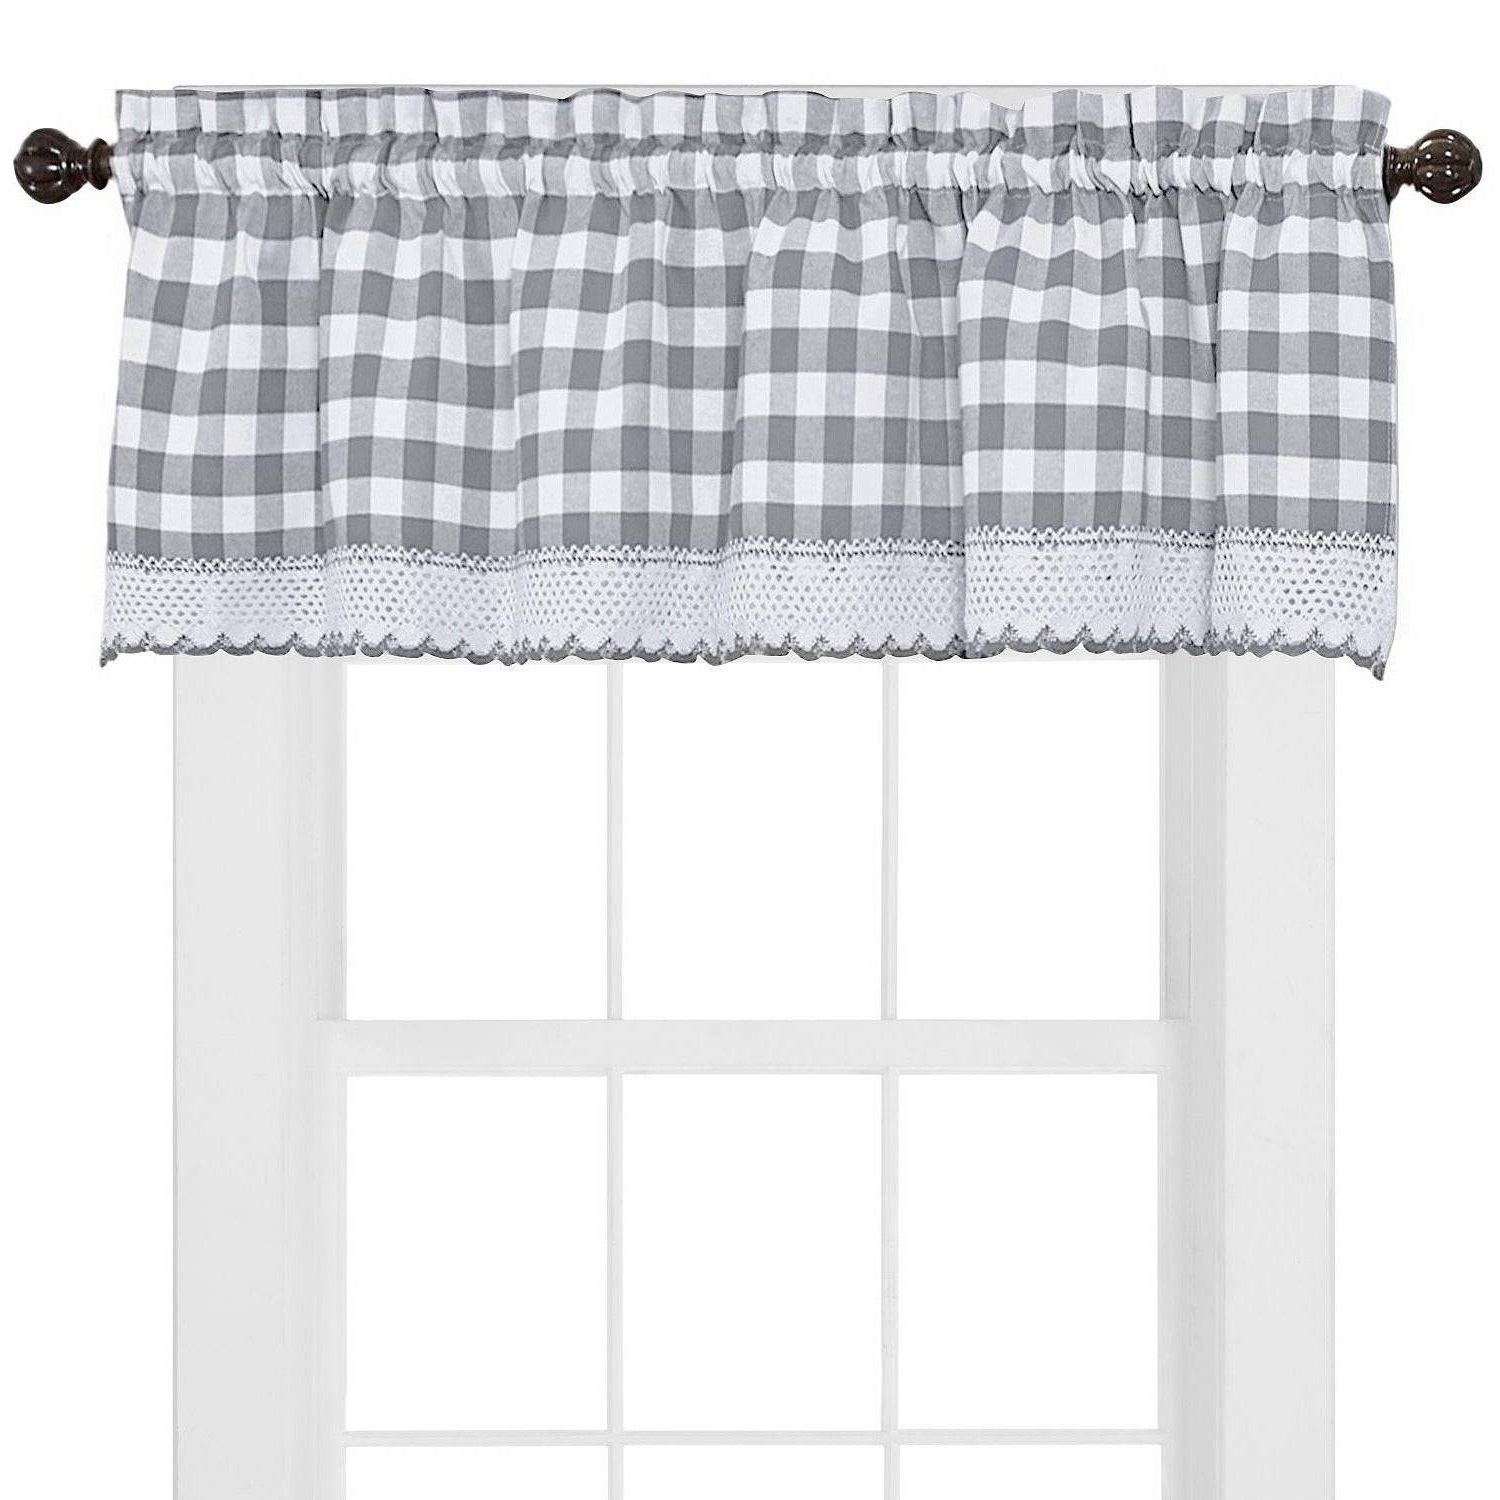 Well Known Alluring Black And White Checkered Kitchen Valance Valances Pertaining To Classic Black And White Curtain Tiers (View 8 of 20)